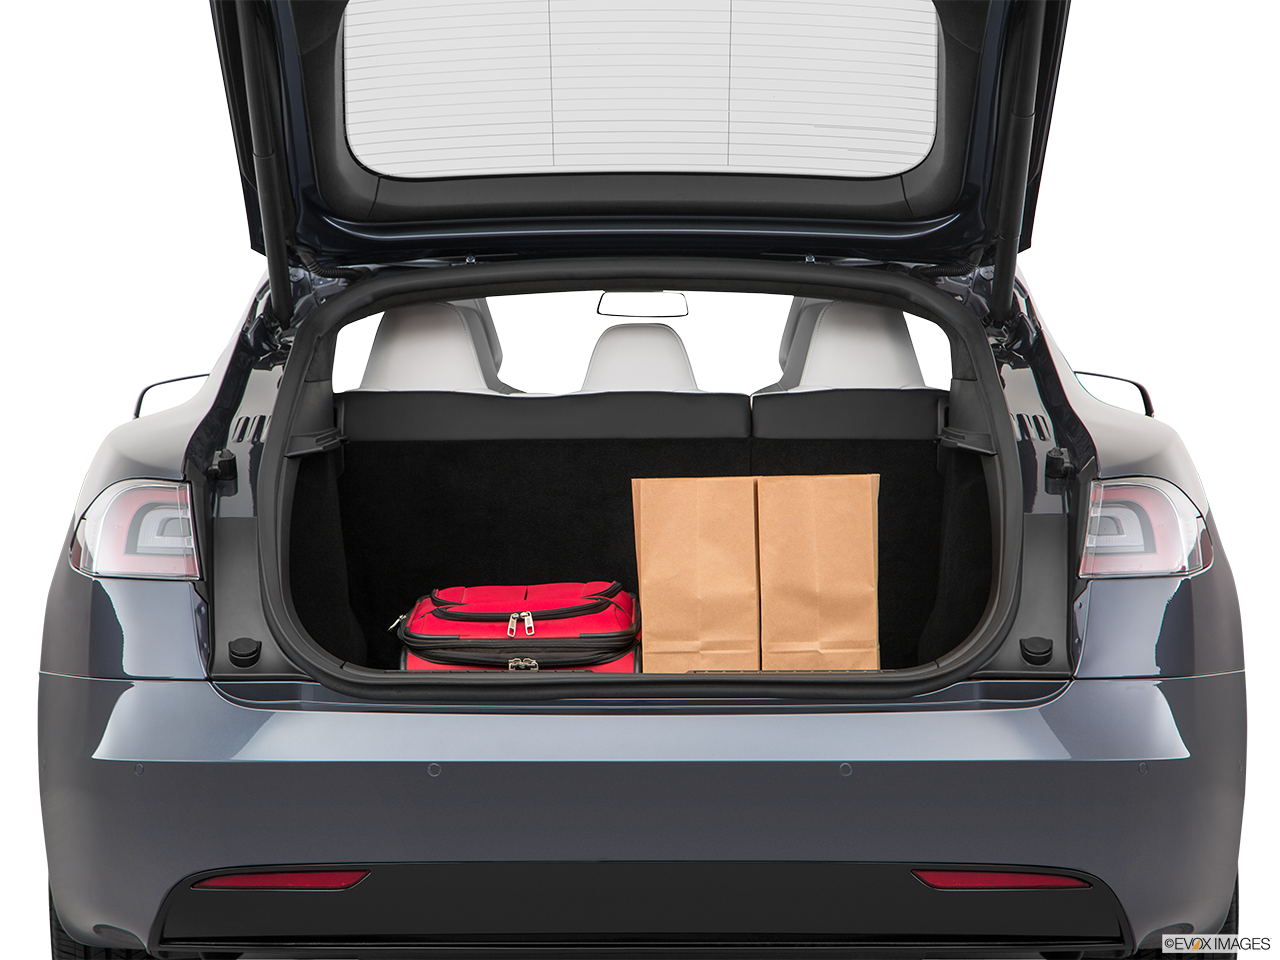 Trunk view of the Tesla Model S